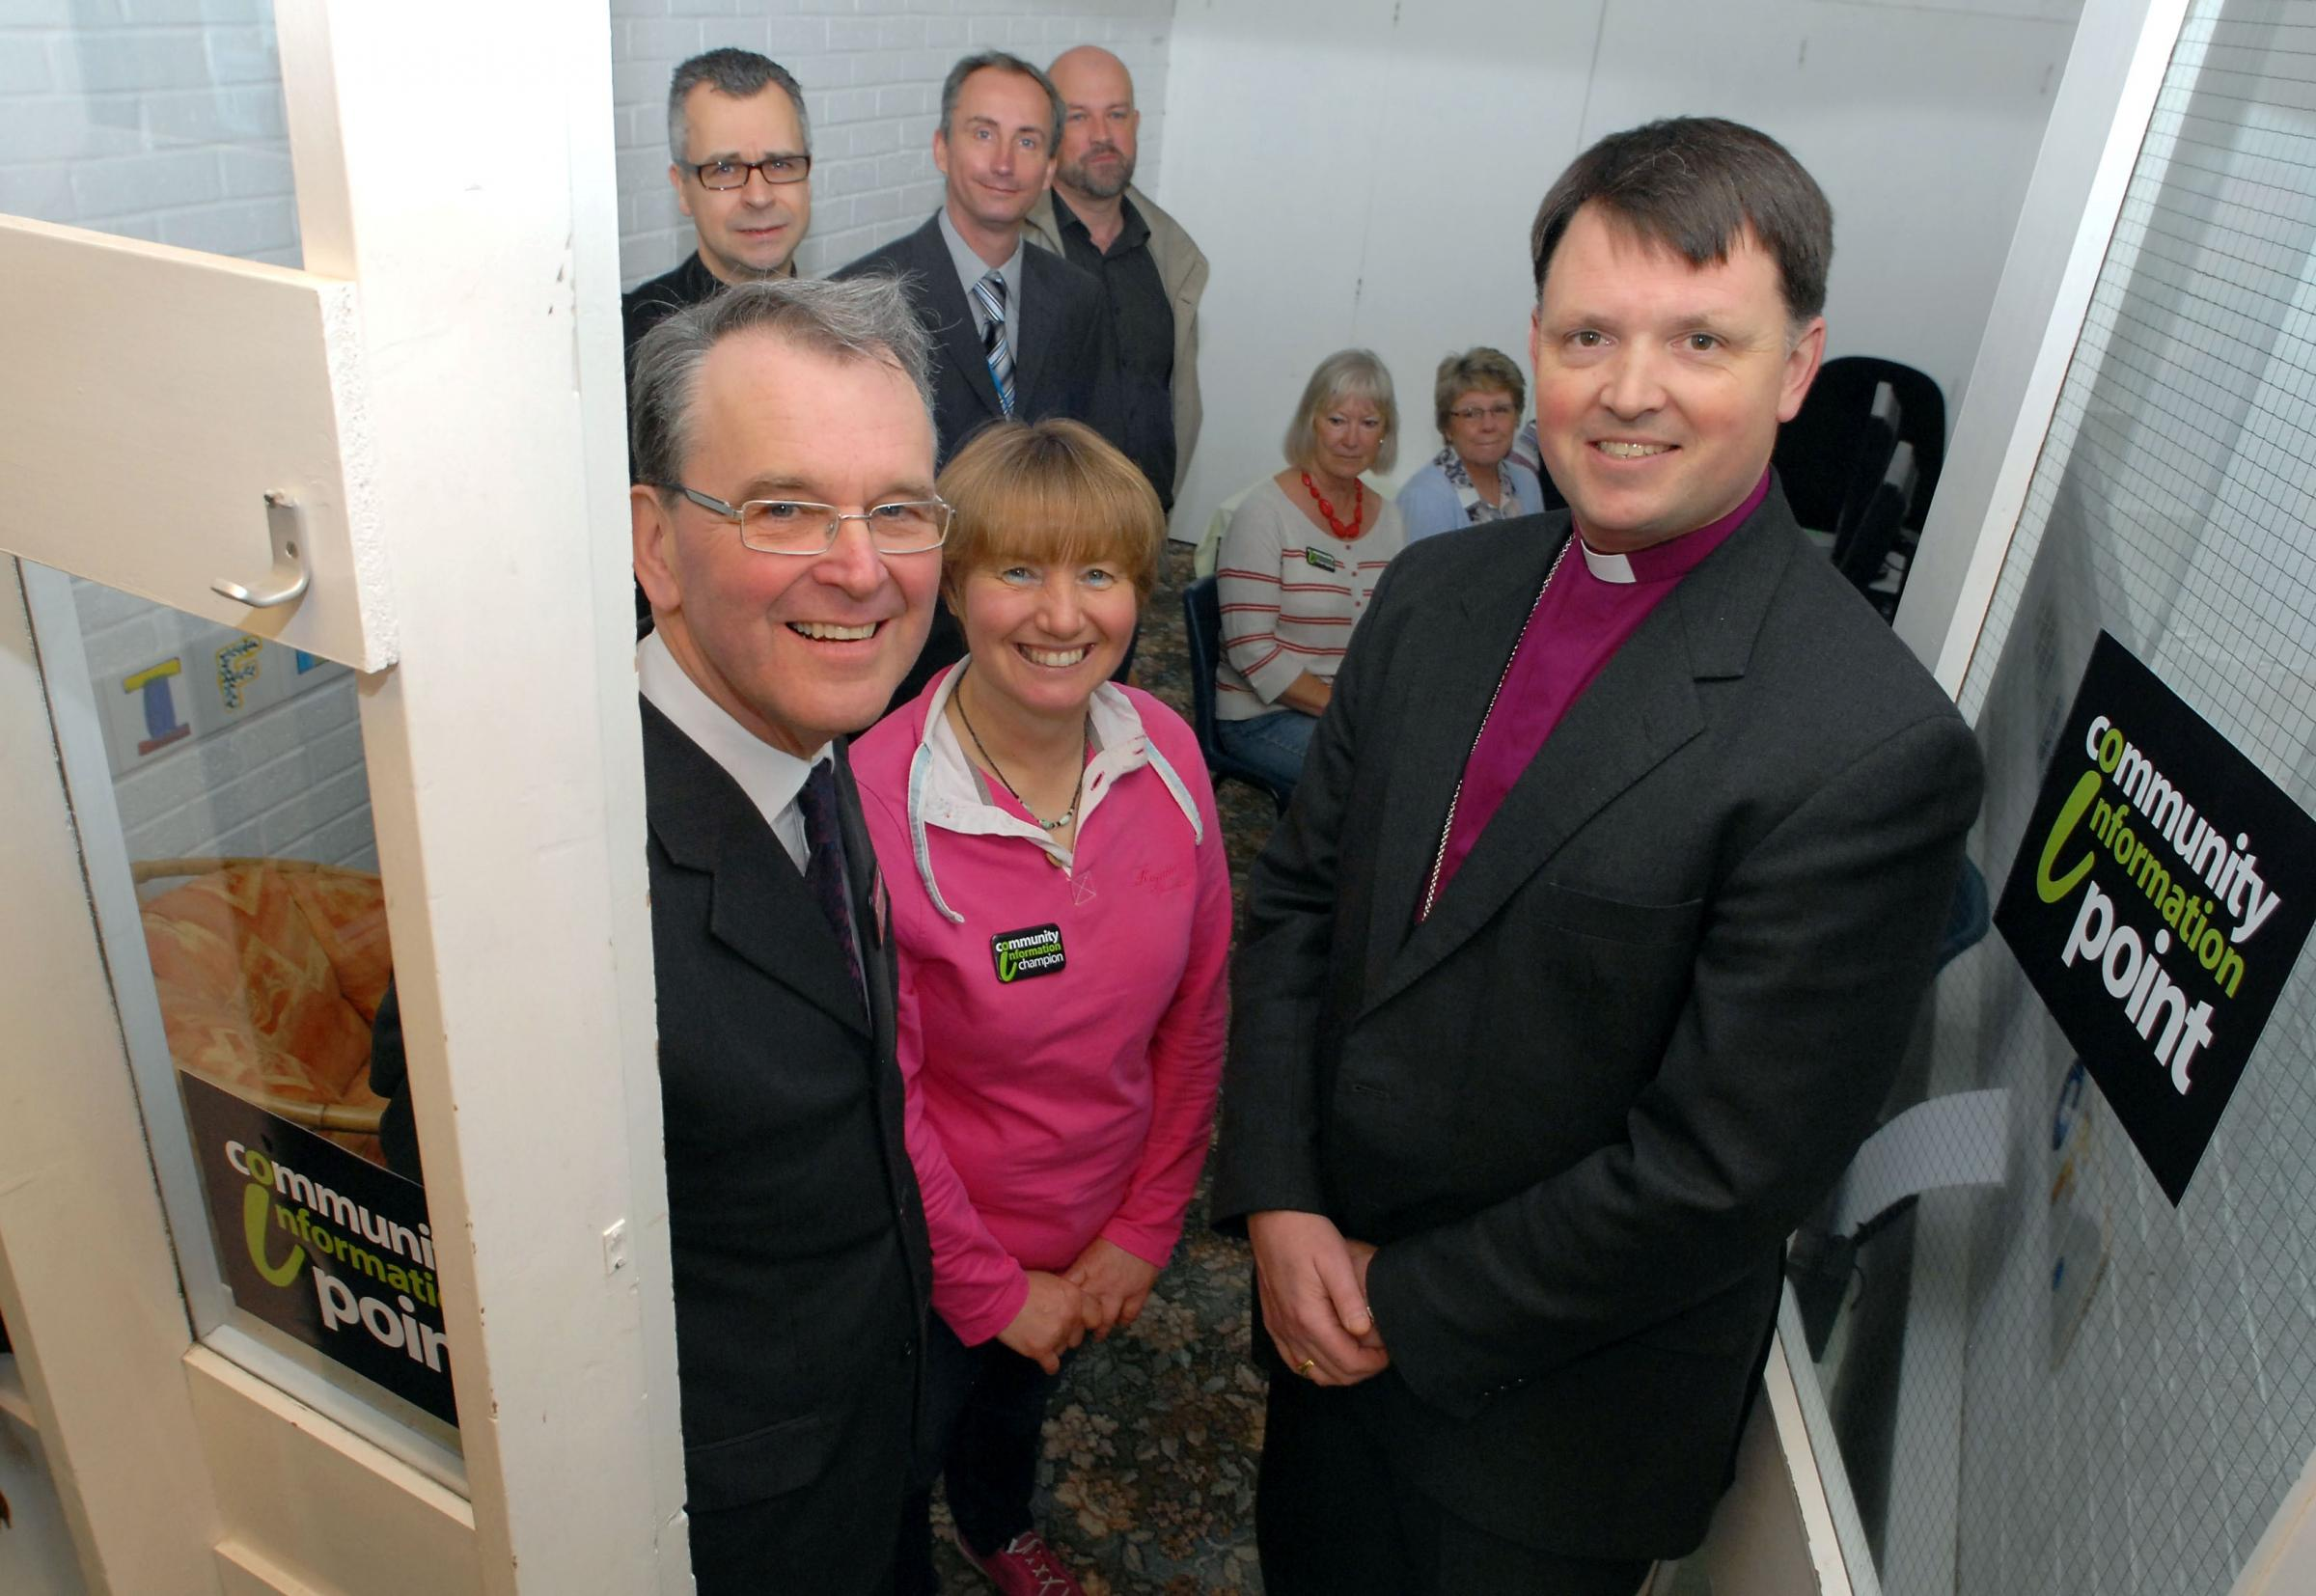 Bishop of Dudley Graham Usher opens the Community Information Point in